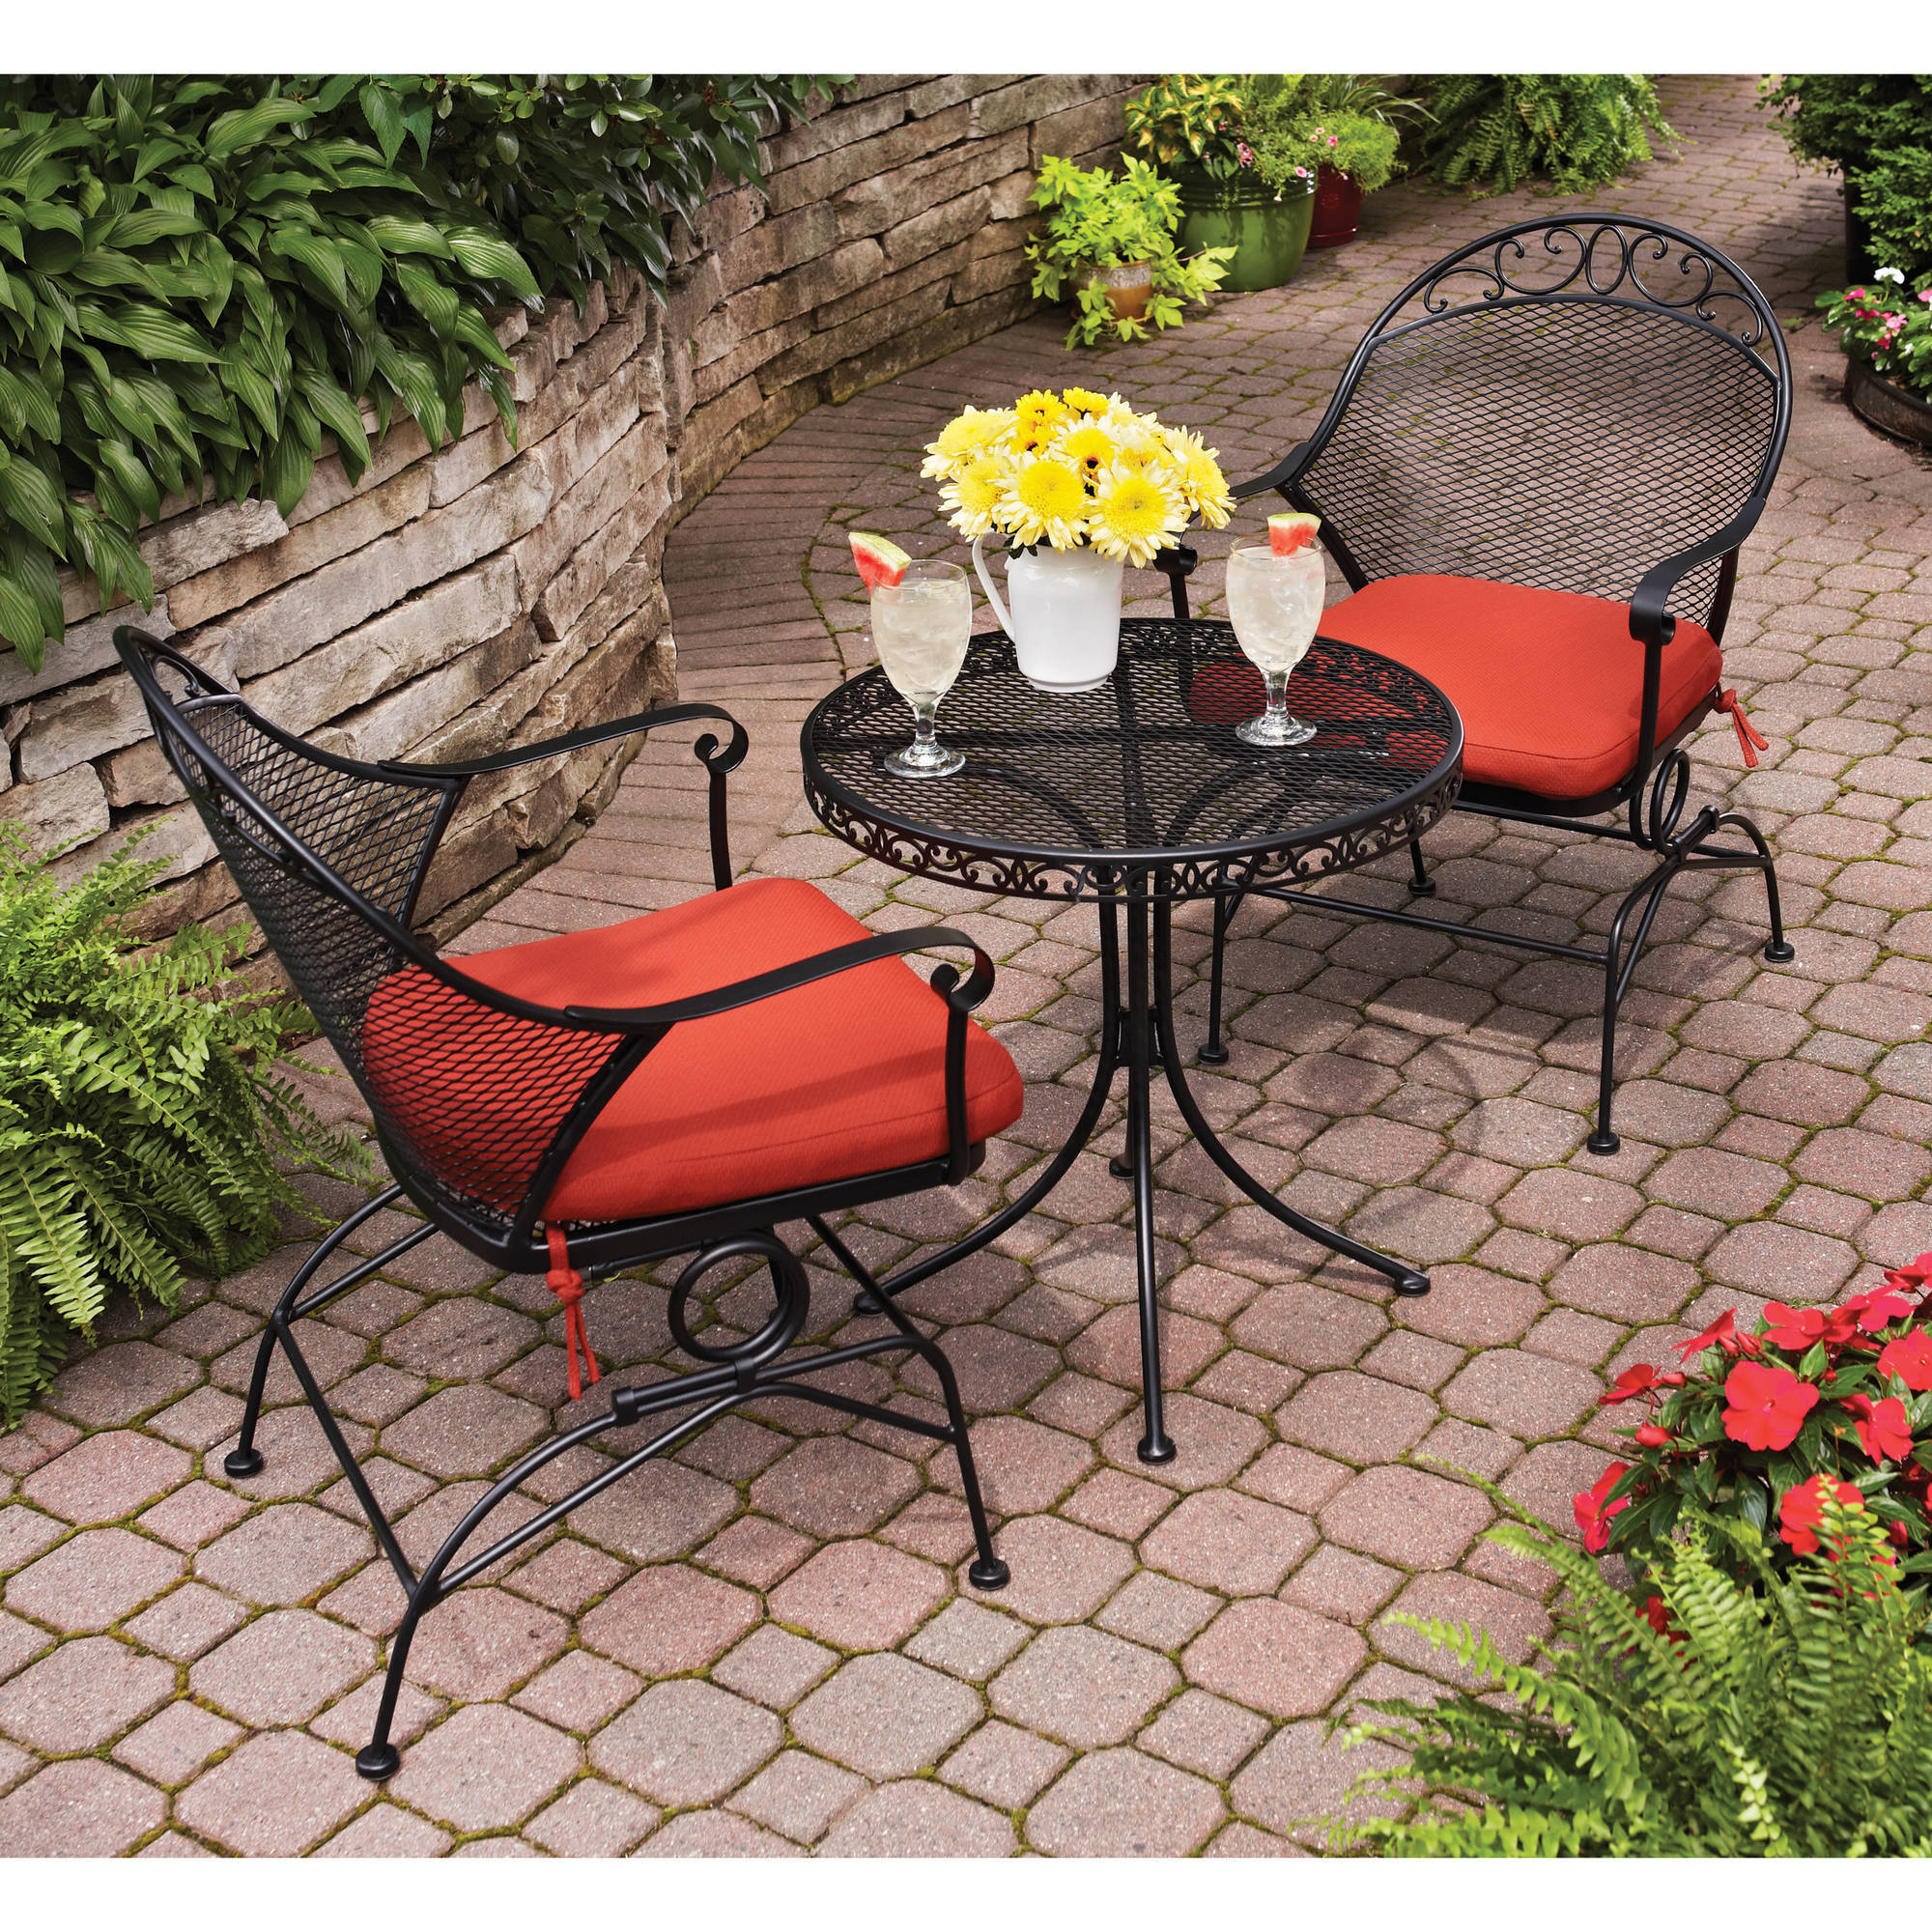 Superb Patio Table Chairs Outdoor Bistro Set Patio Wrought Iron Rustic Garden  Furniture